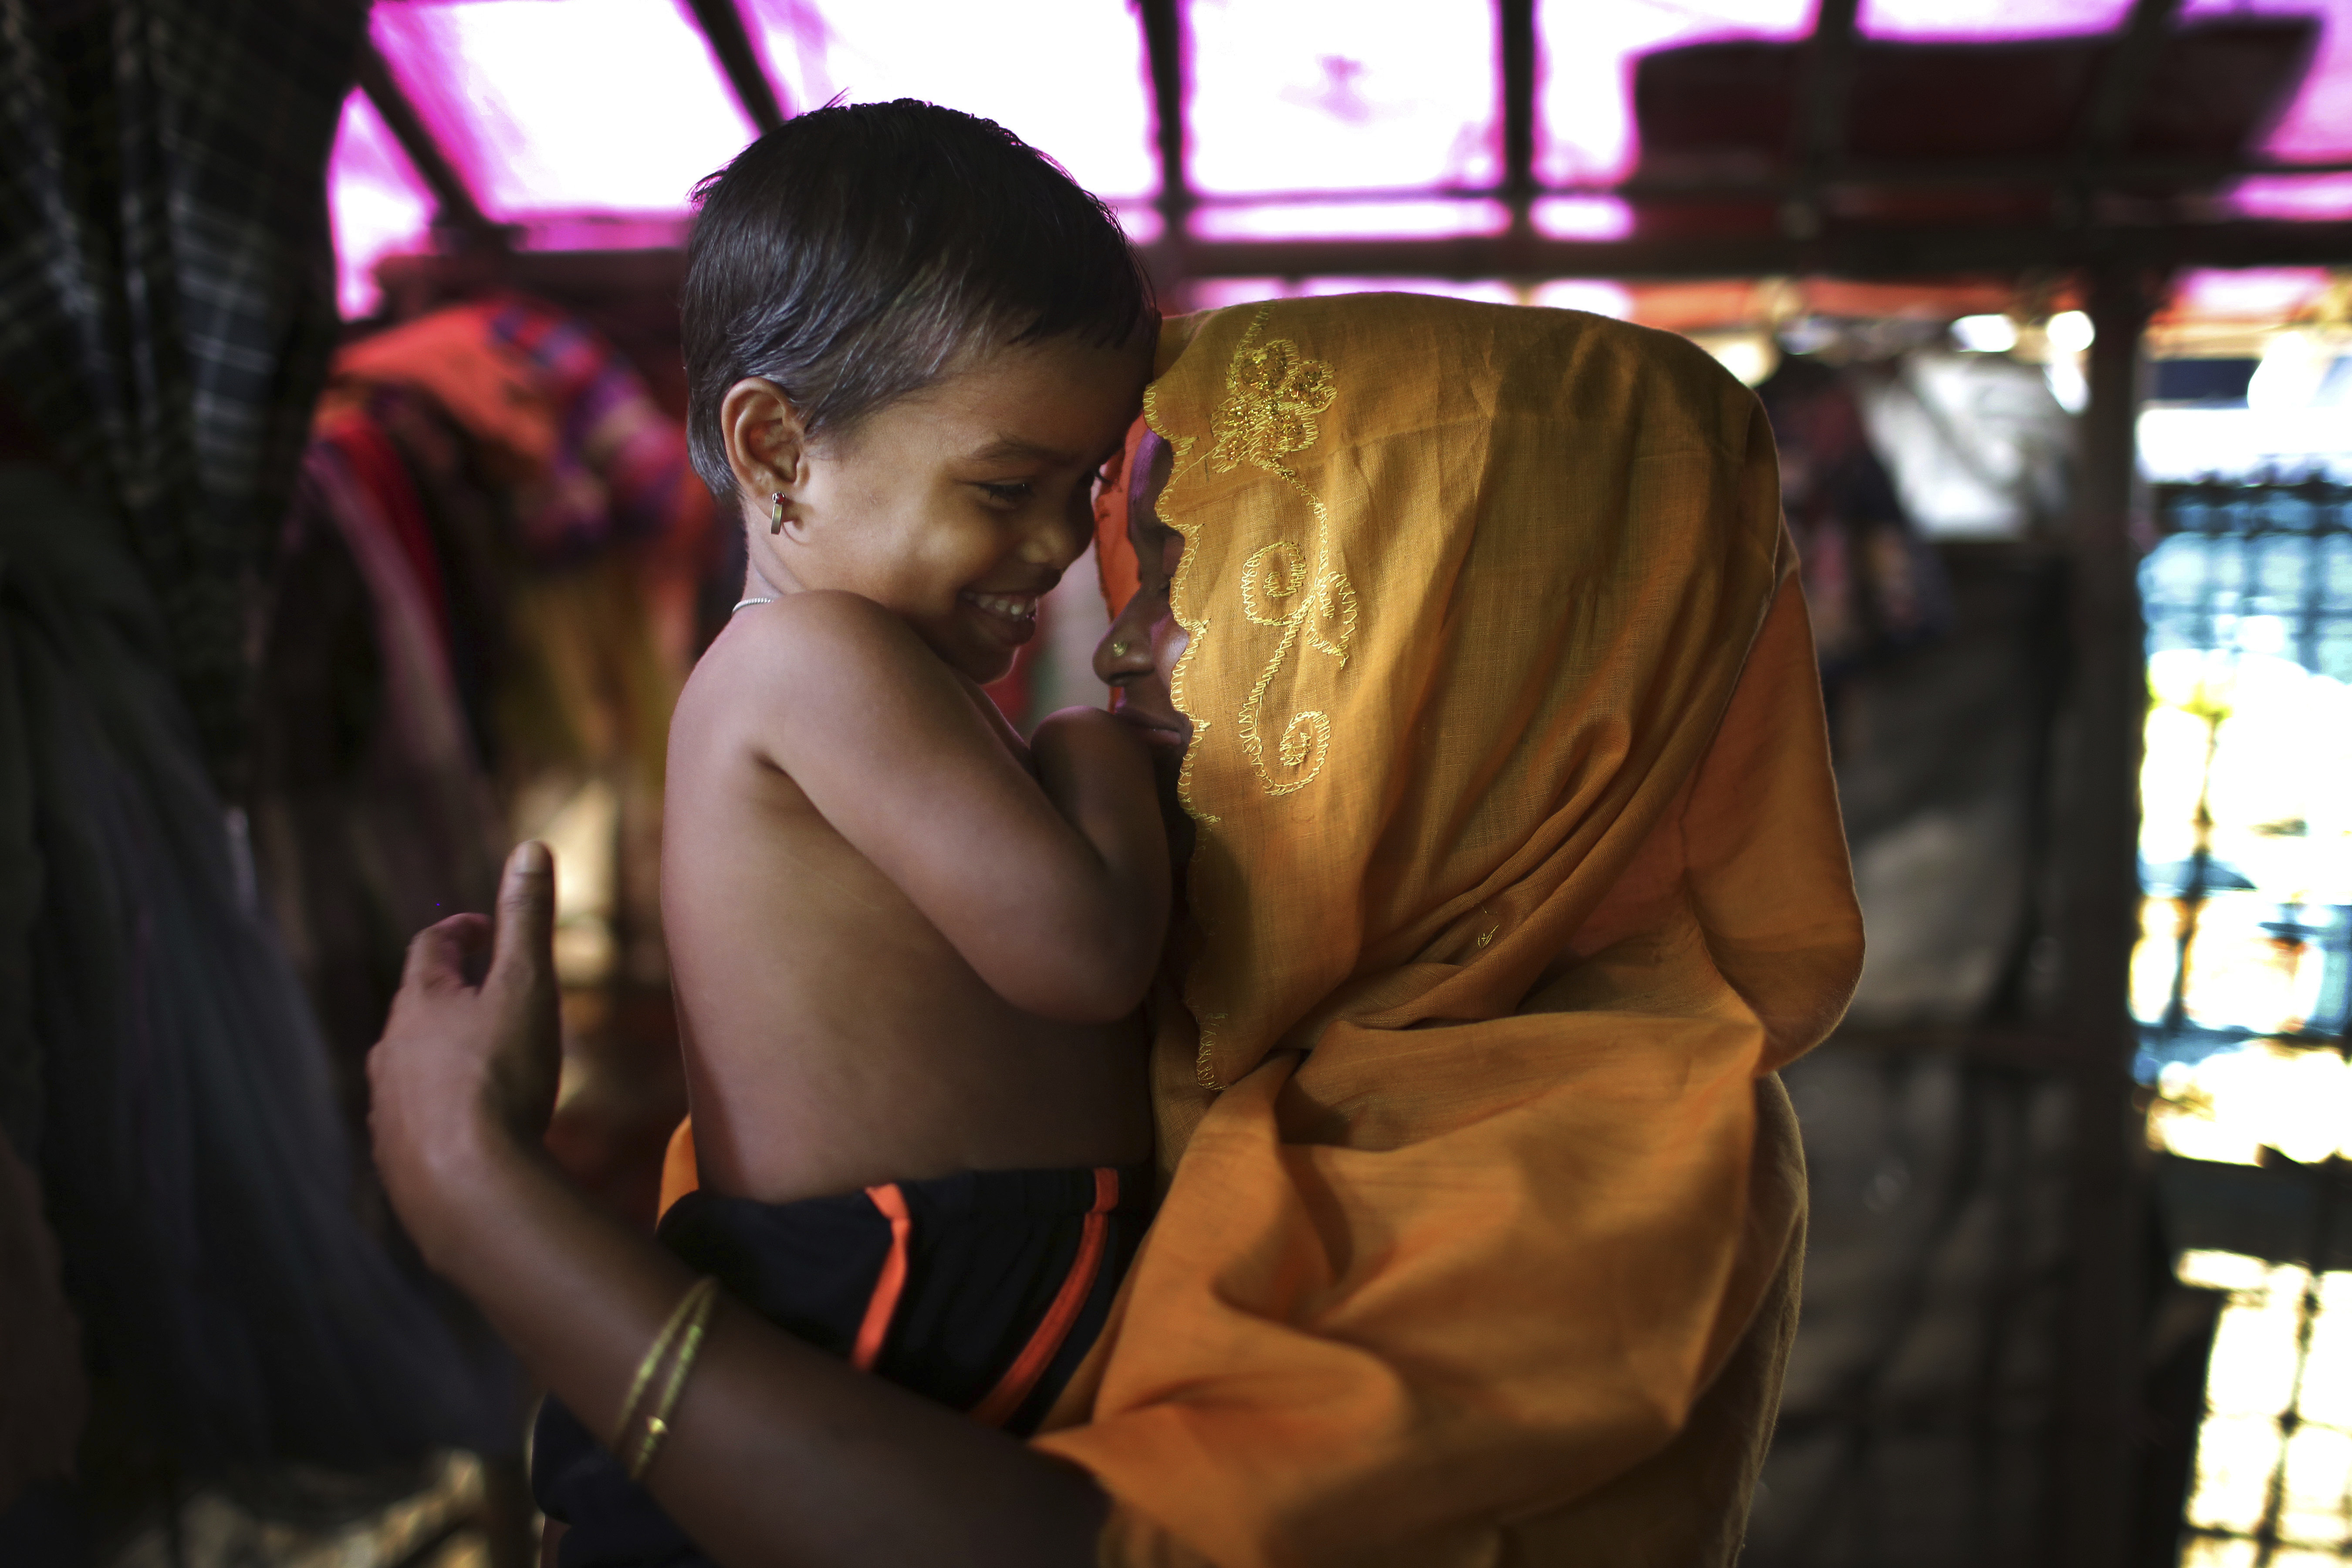 This 28-year-old mother of six, who did not want her name used, says she was raped by members of Myanmar's armed forces in late August. She caresses her daughter while being photographed in her tent in the Kutupalong refugee camp in Bangladesh, Nov. ...